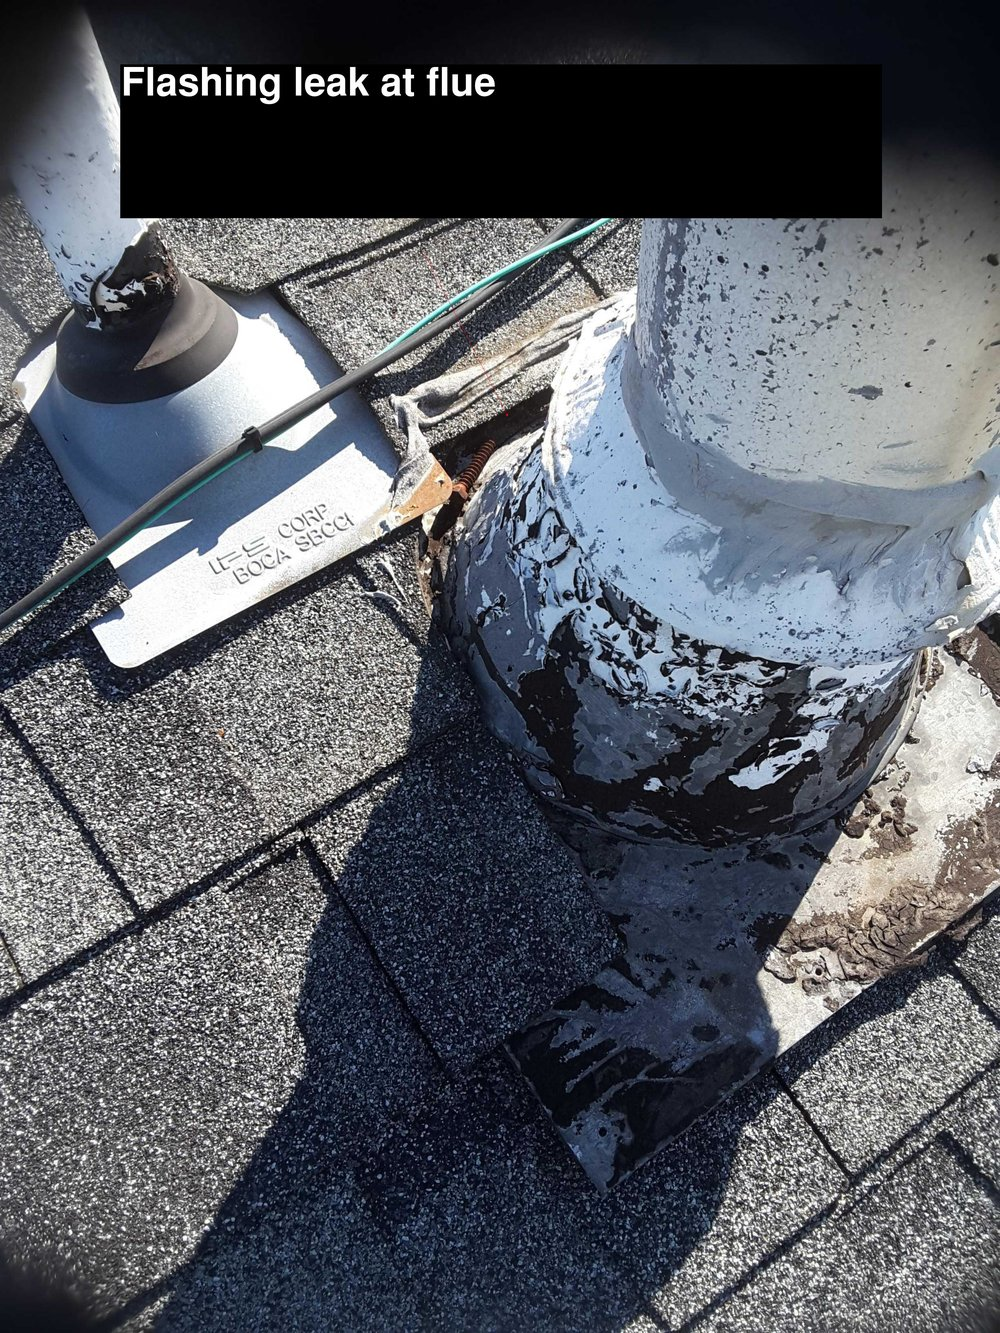 Roof Leak - When inspecting the interior mechanical room I observed a ceiling stain around the flue.